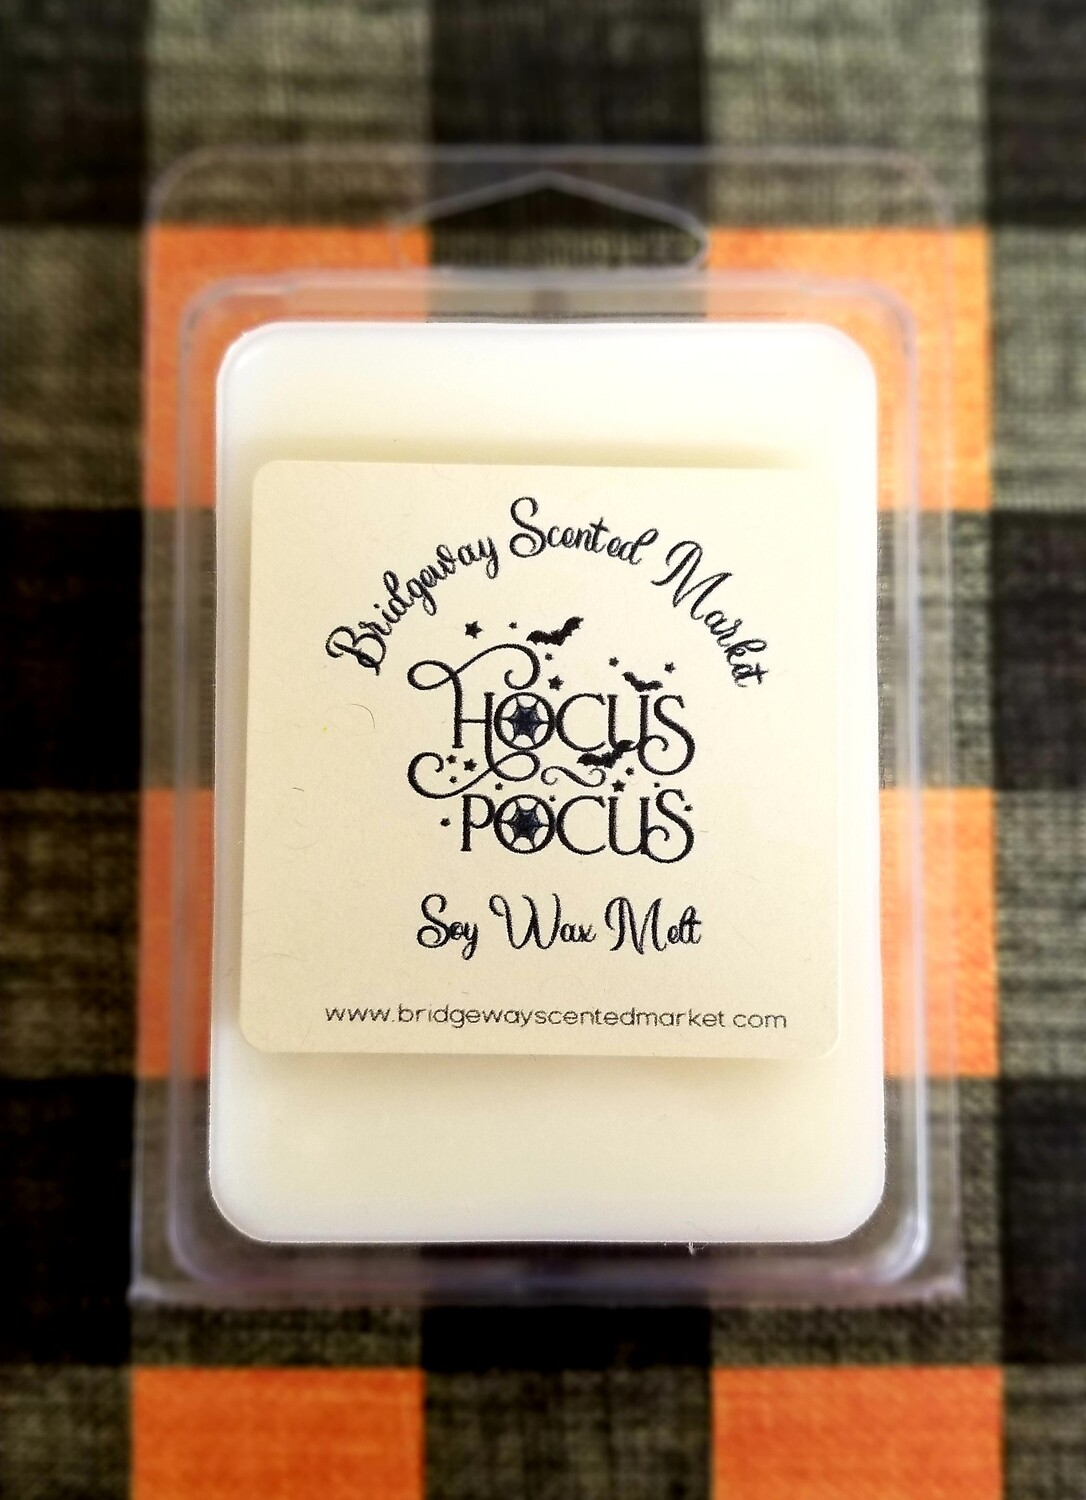 Limited Edition Hocus Pocus Soy Wax Melt